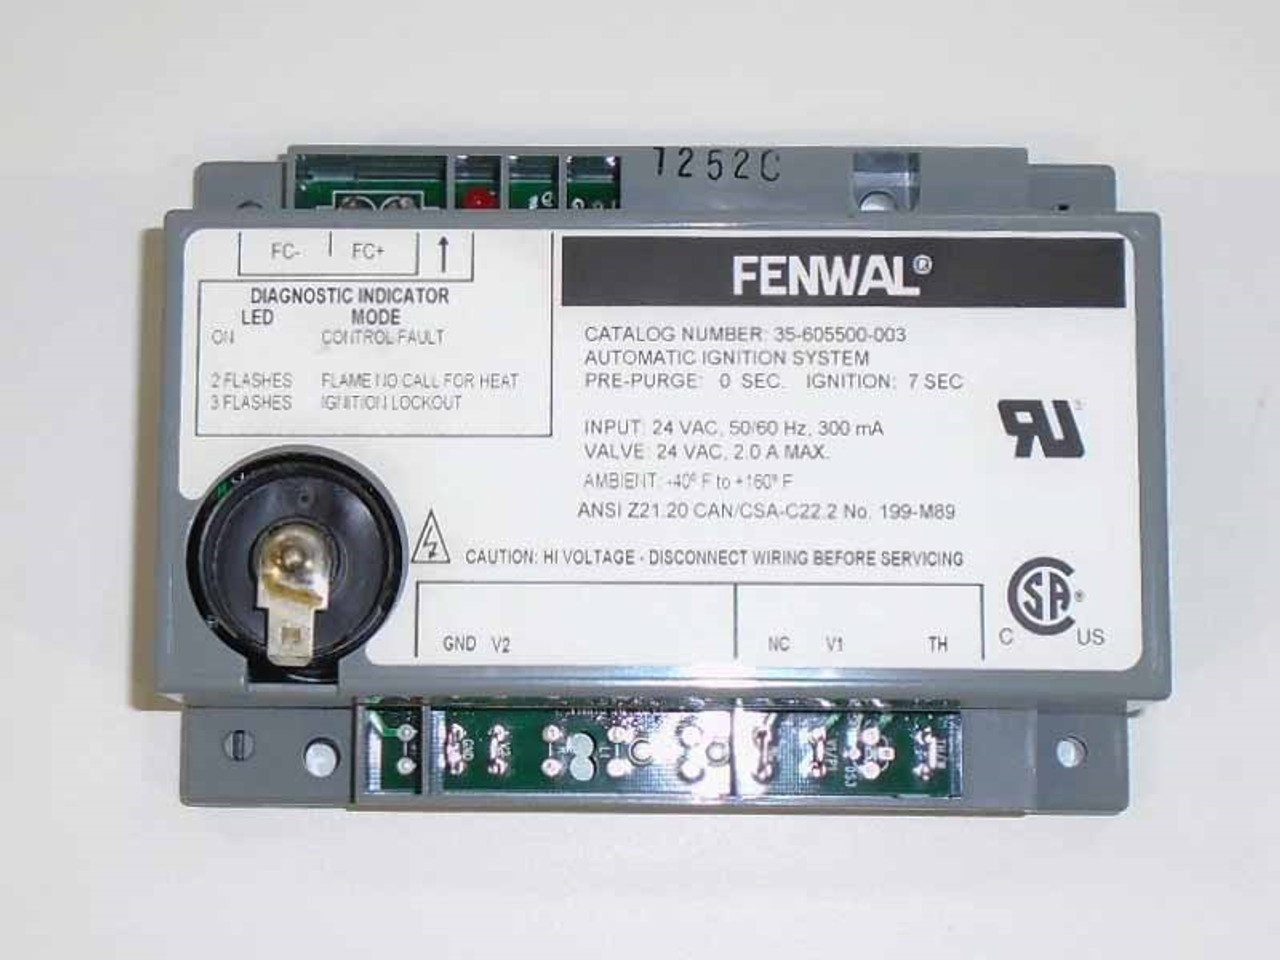 fmi gas fireplace fenwal ignition control module 14384. Black Bedroom Furniture Sets. Home Design Ideas